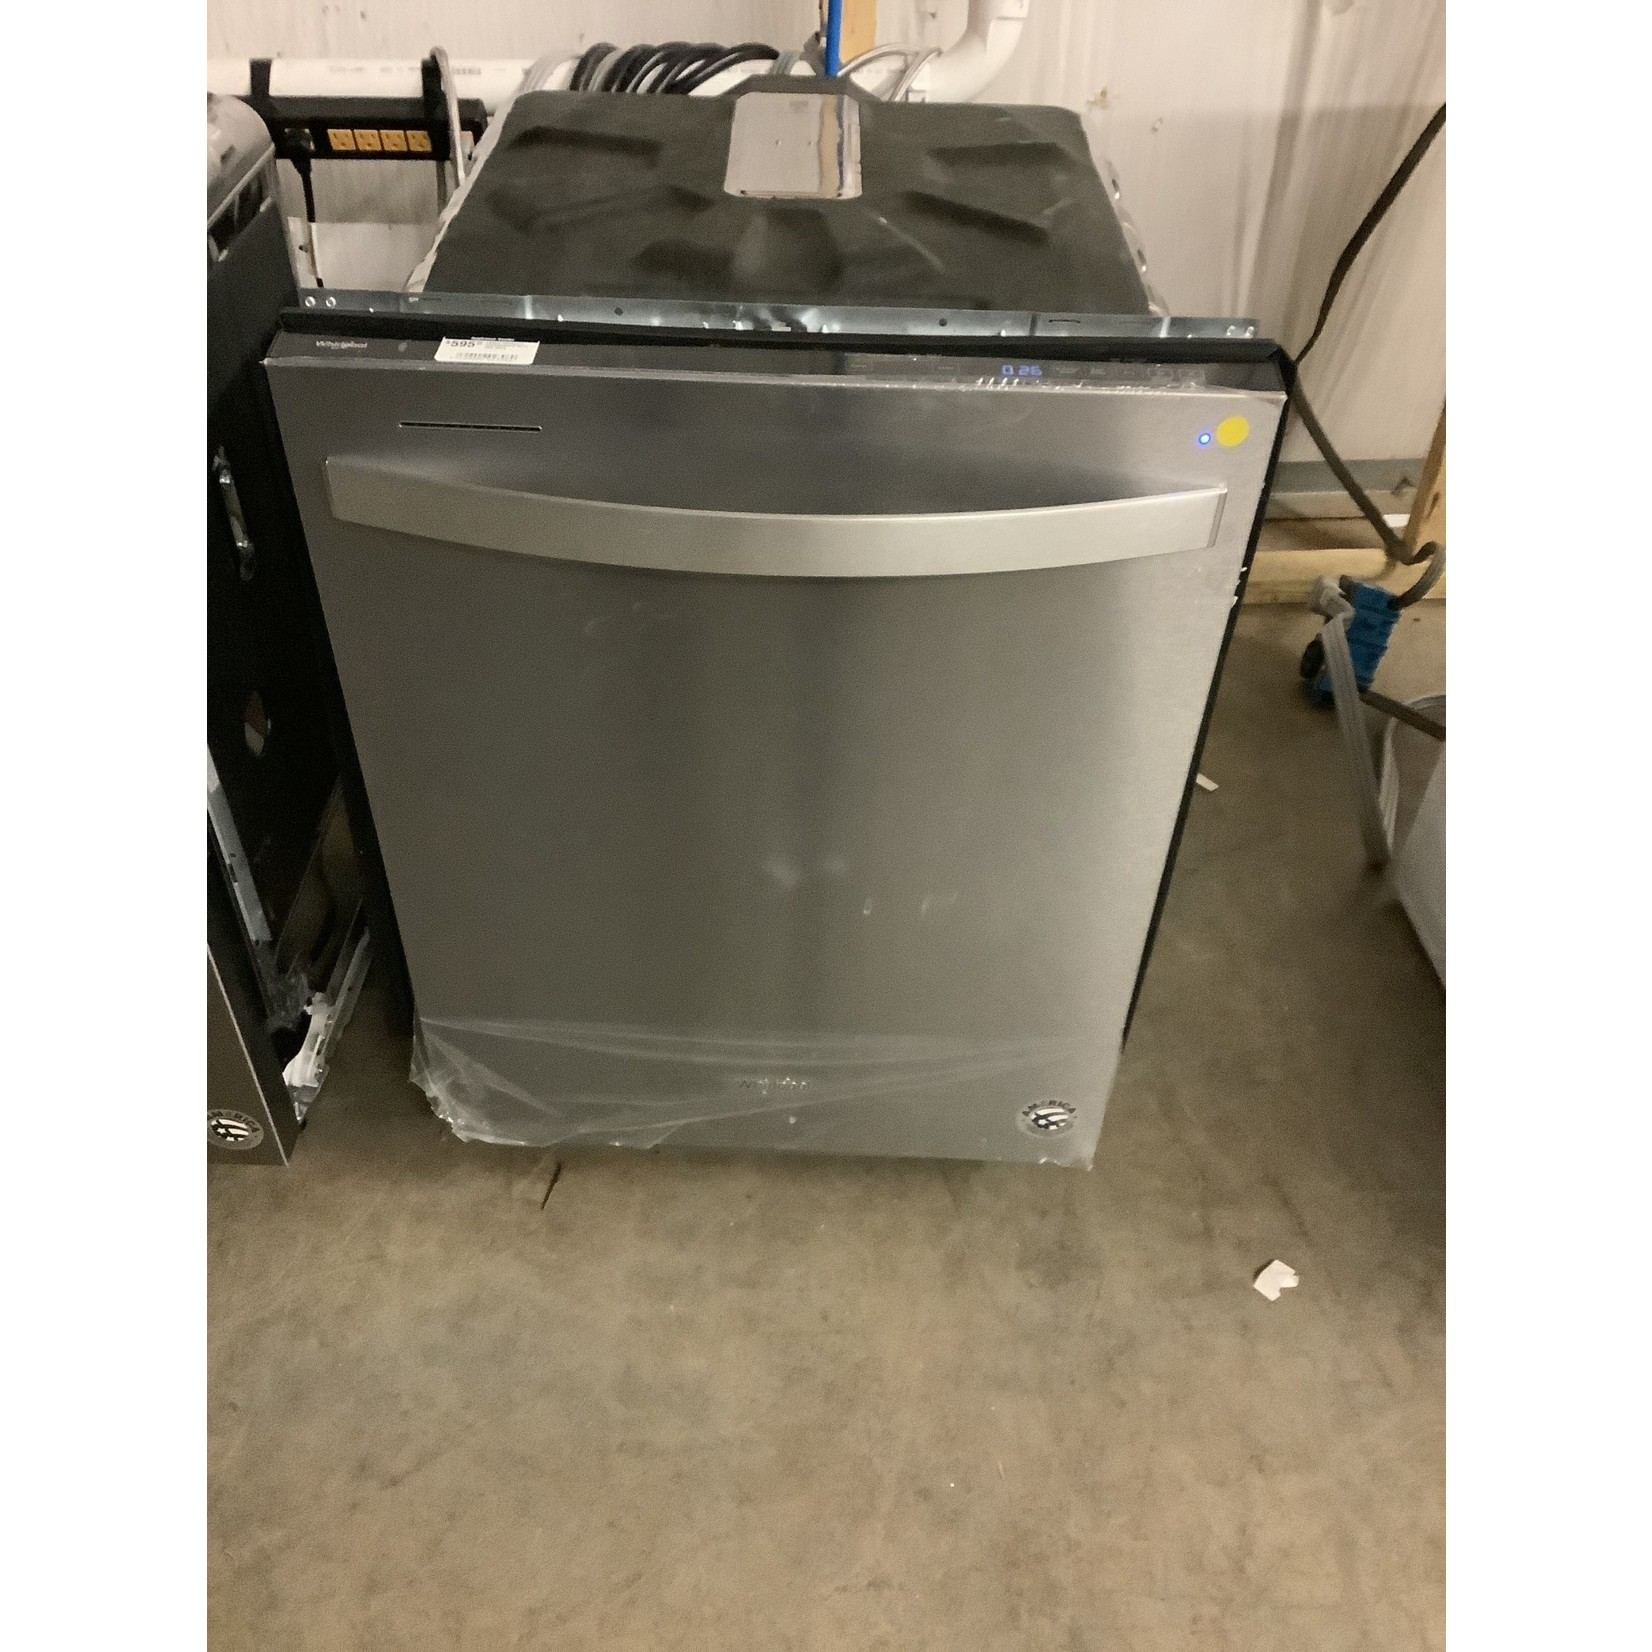 Whirlpool LARGE CAPACITY DISHWASHER WITH 3RD RACK